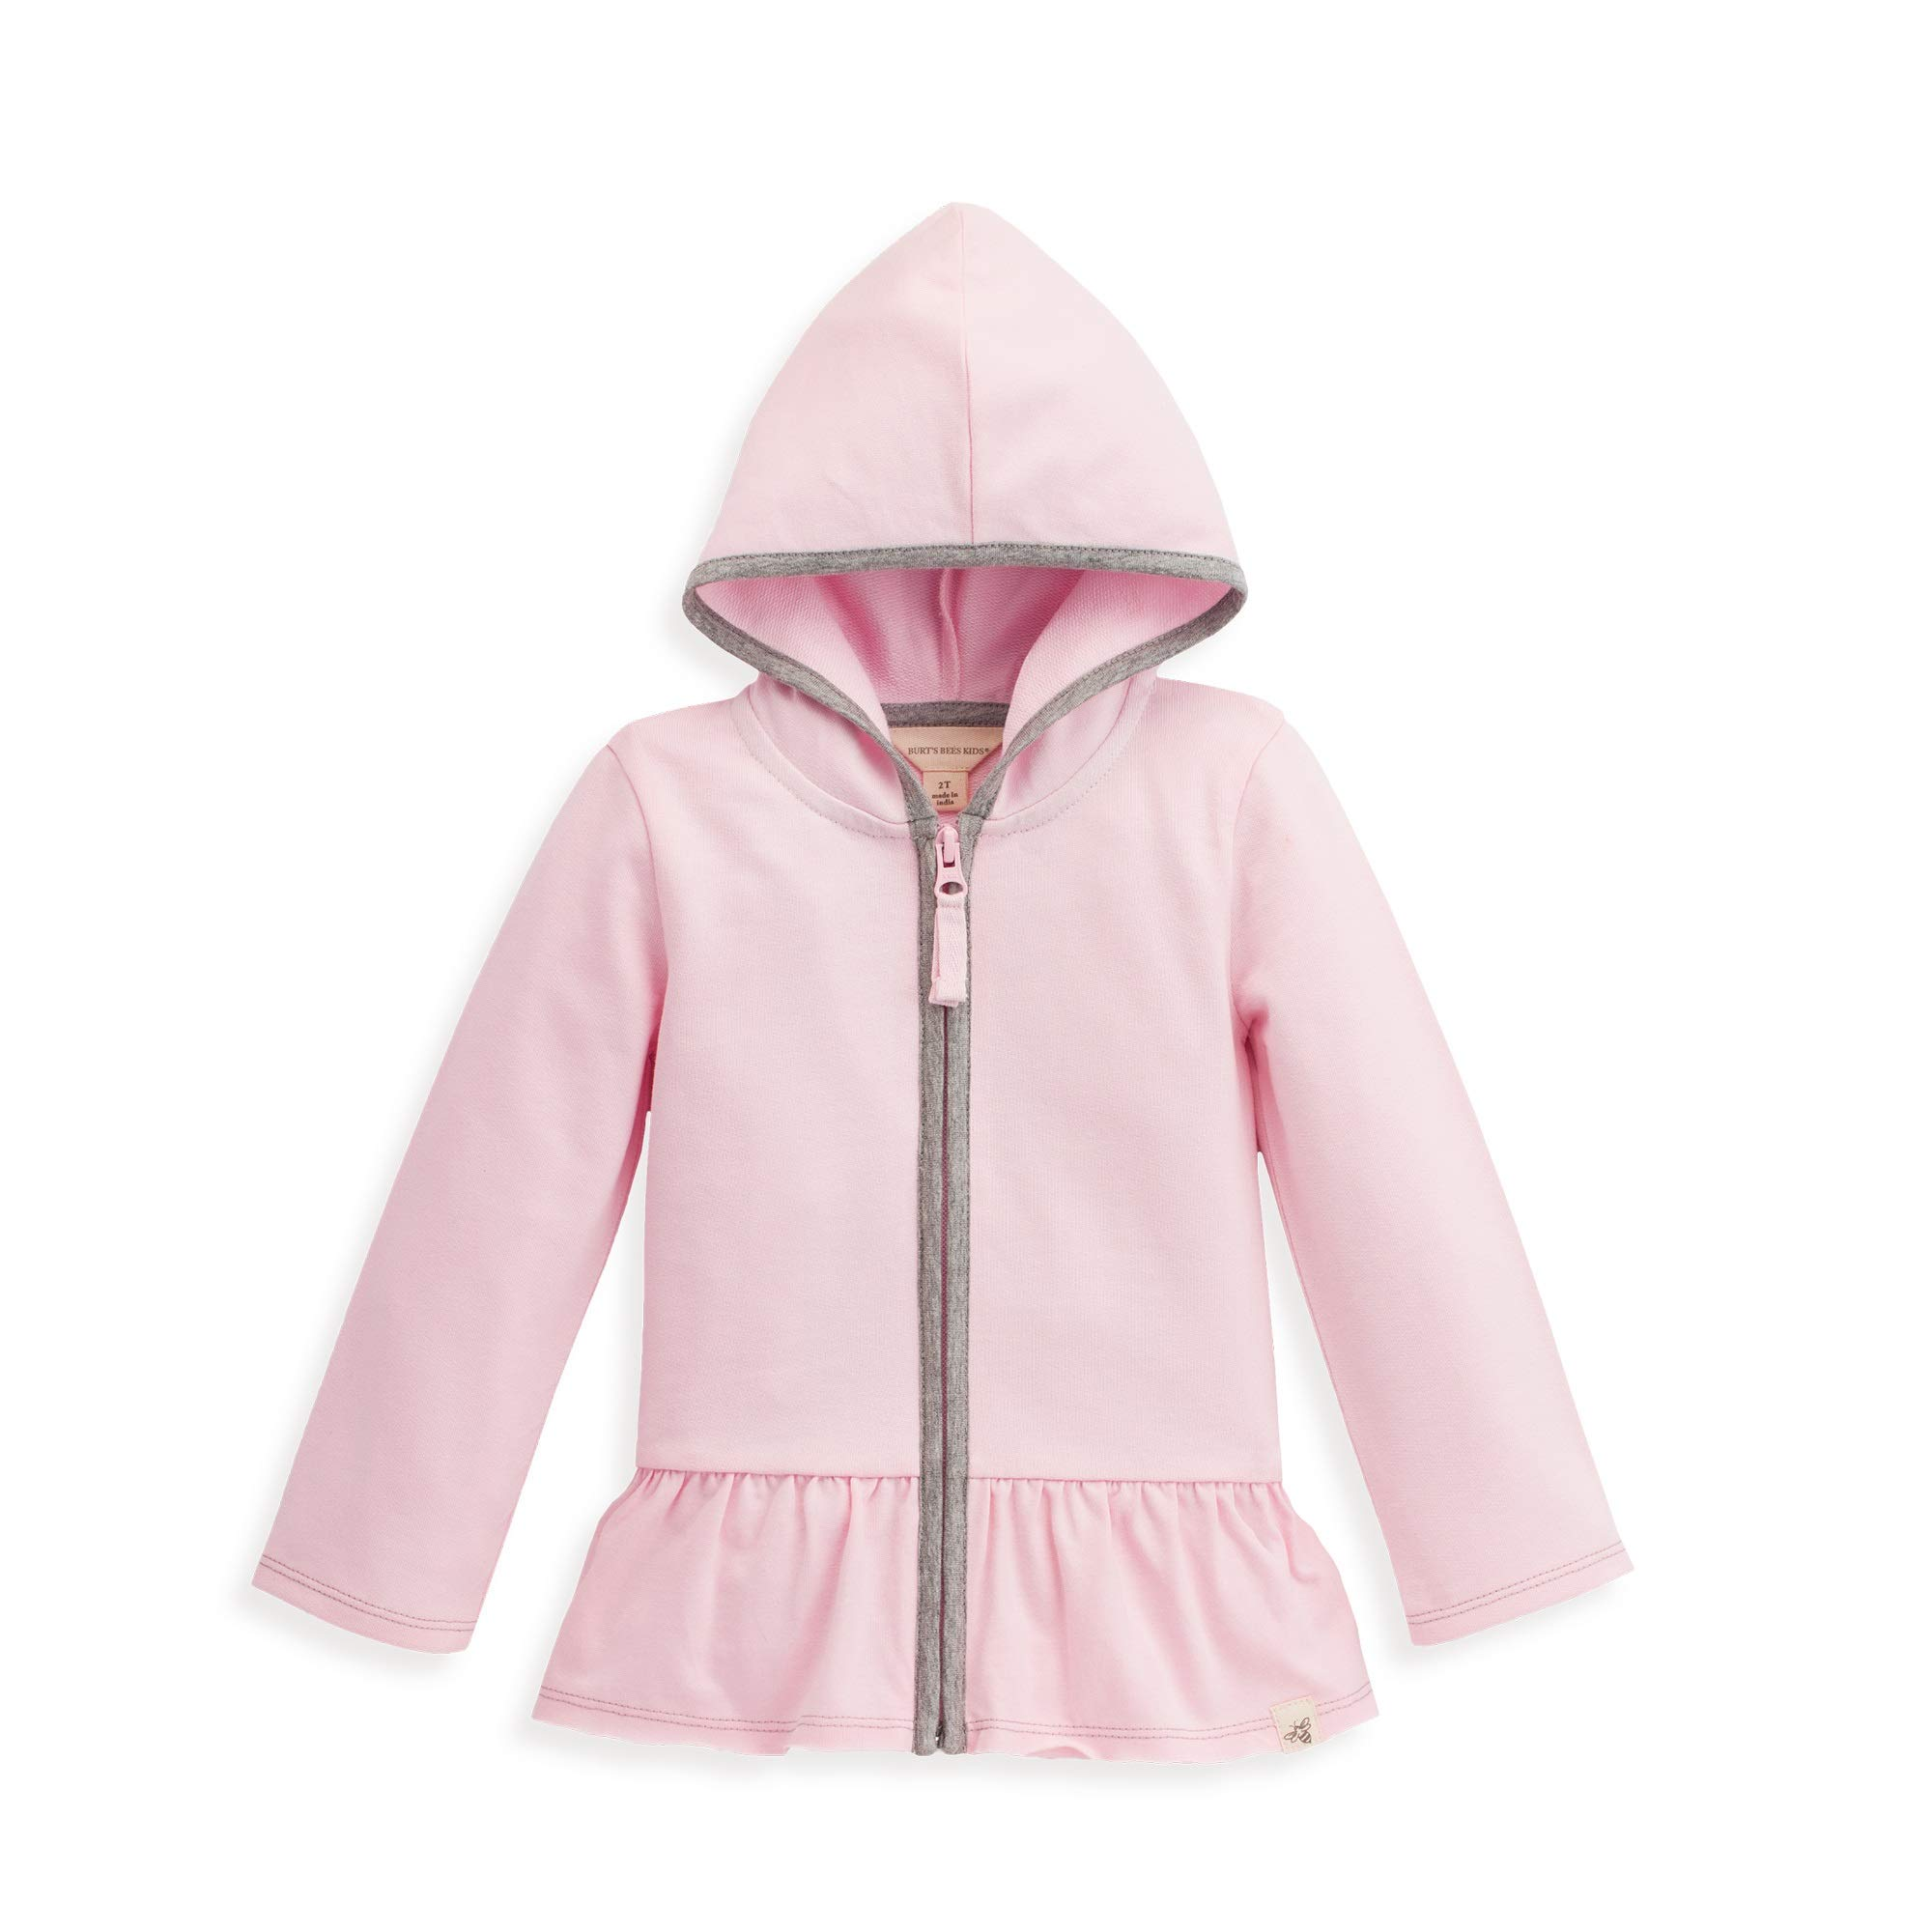 Burt's Bees Baby Baby Girl's French Terry Gathered Zip Hoodie Outerwear, blossom, 5 Years